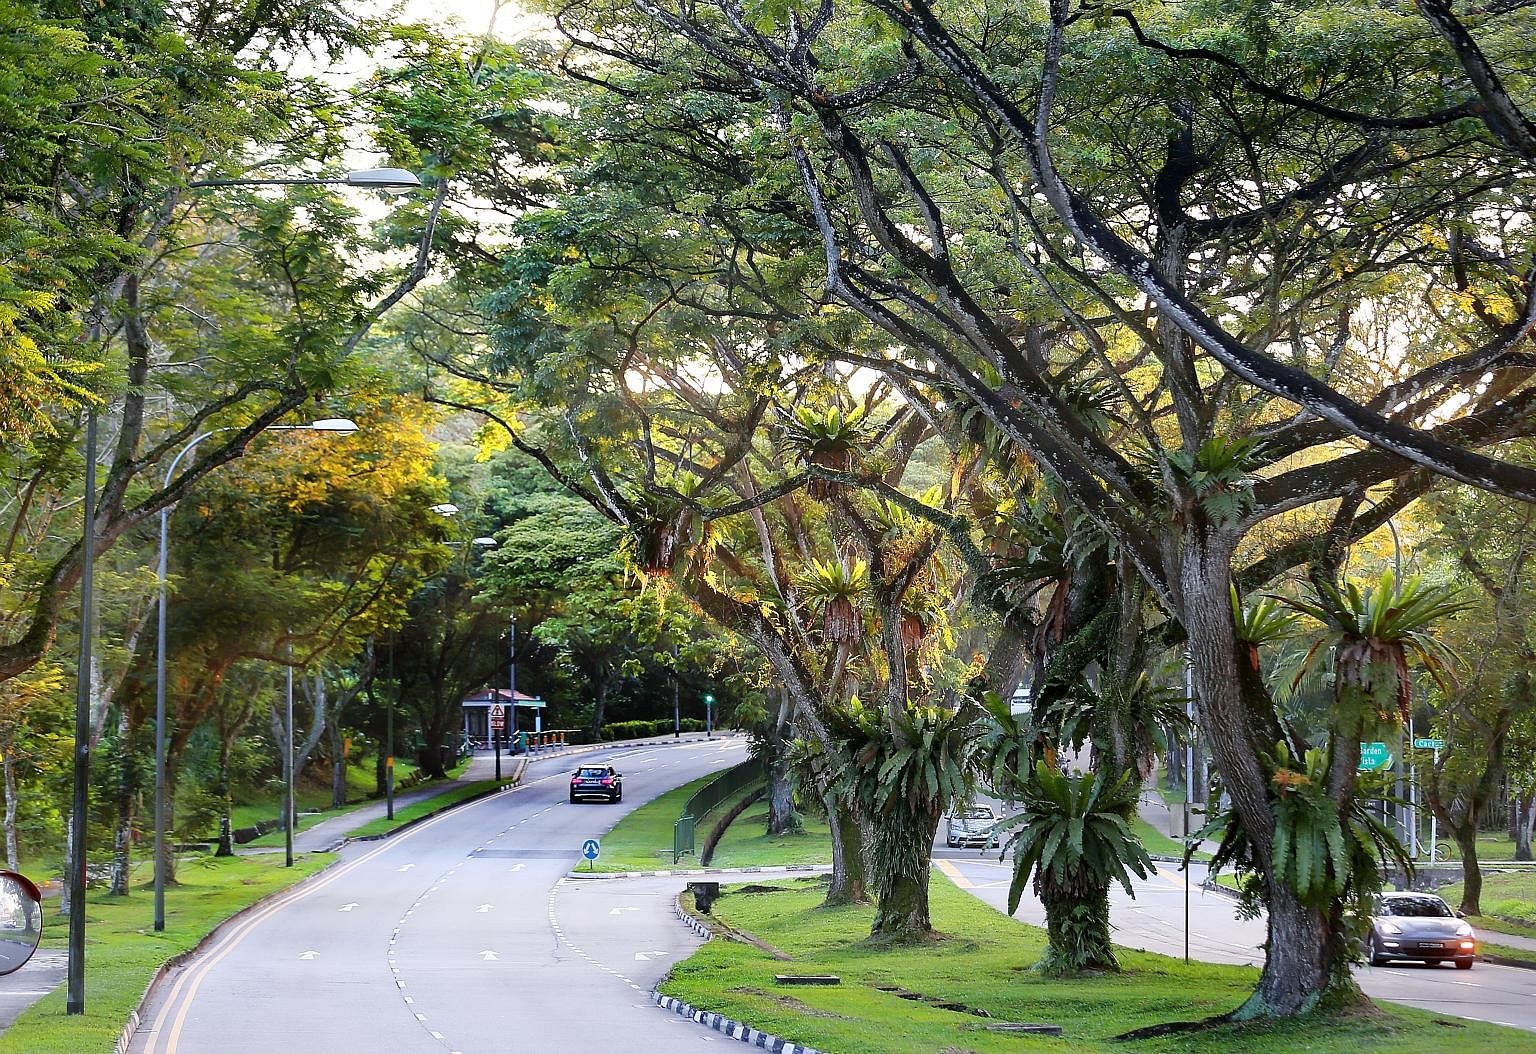 """The writer calls a 1 1/2km stretch of Yio Chu Kang Road his """"refuge"""". This green belt is where he usually goes for his Sunday walks, to get away from life's """"pesky little irritations"""". Driving shows you nothing, he says. Instead, it is only when one"""